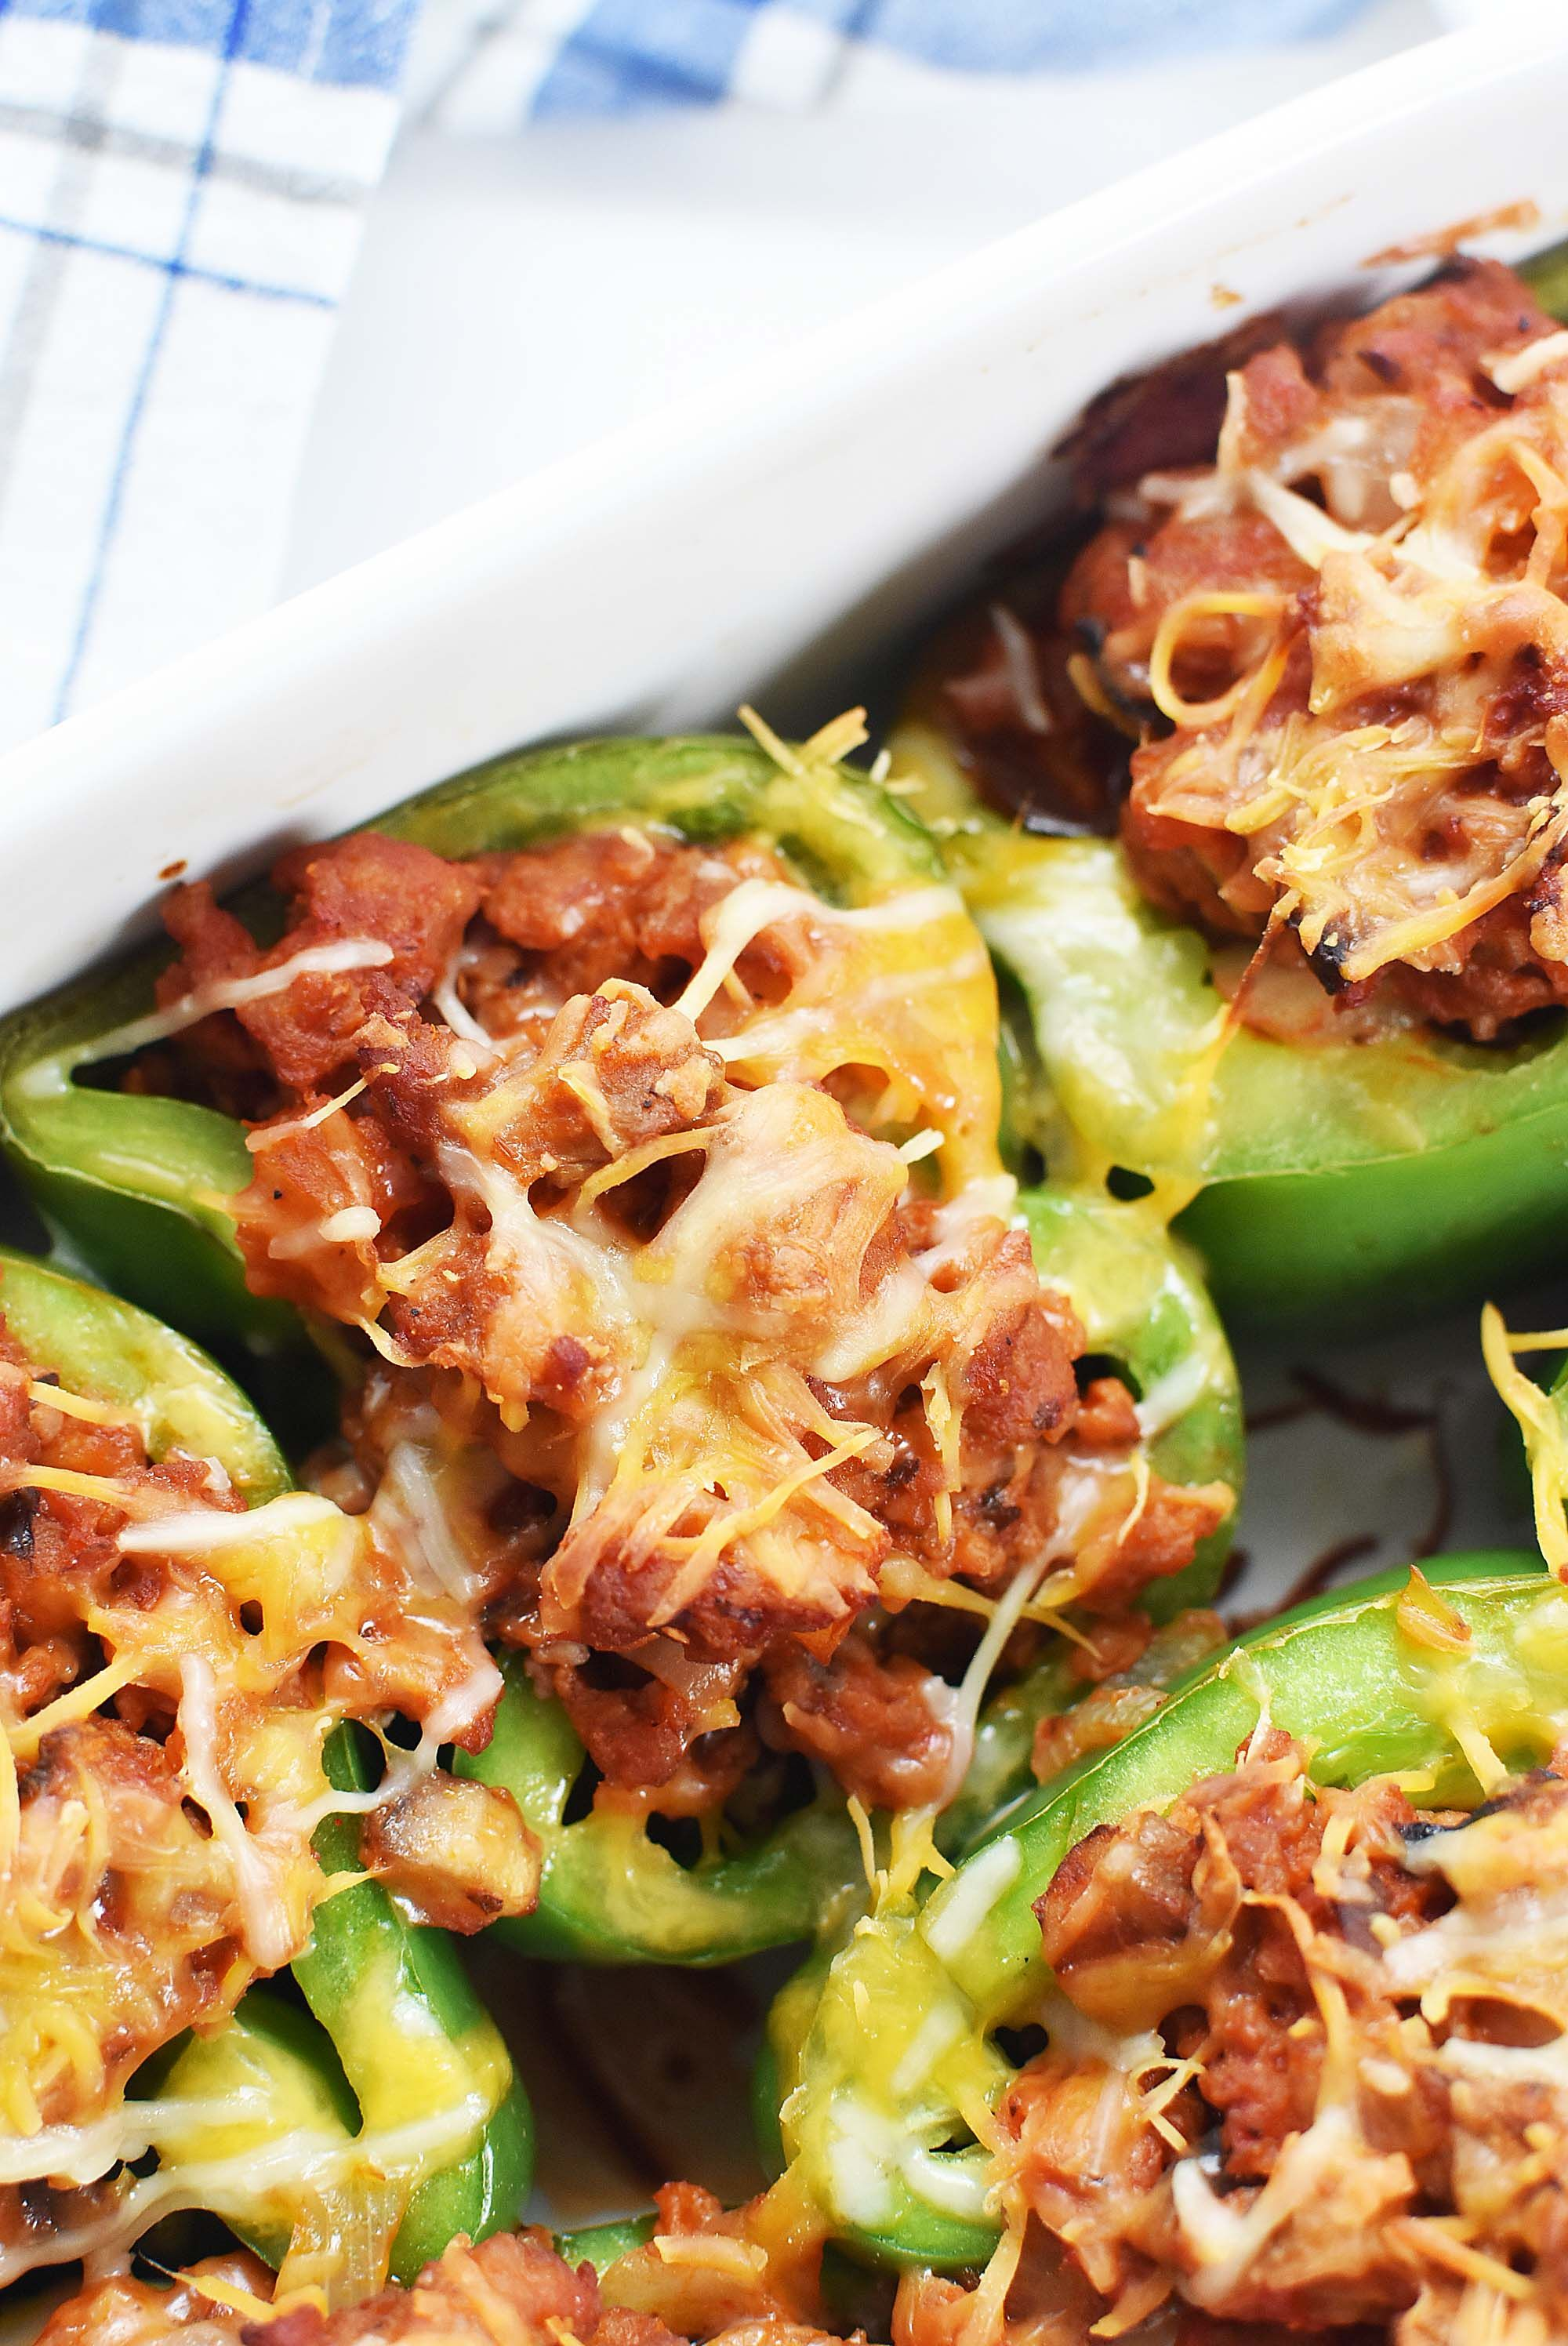 Low Carb Sausage Stuffed Peppers Recipe Stuffed Peppers Hot Italian Sausage Recipes Healthy Sausage Recipes